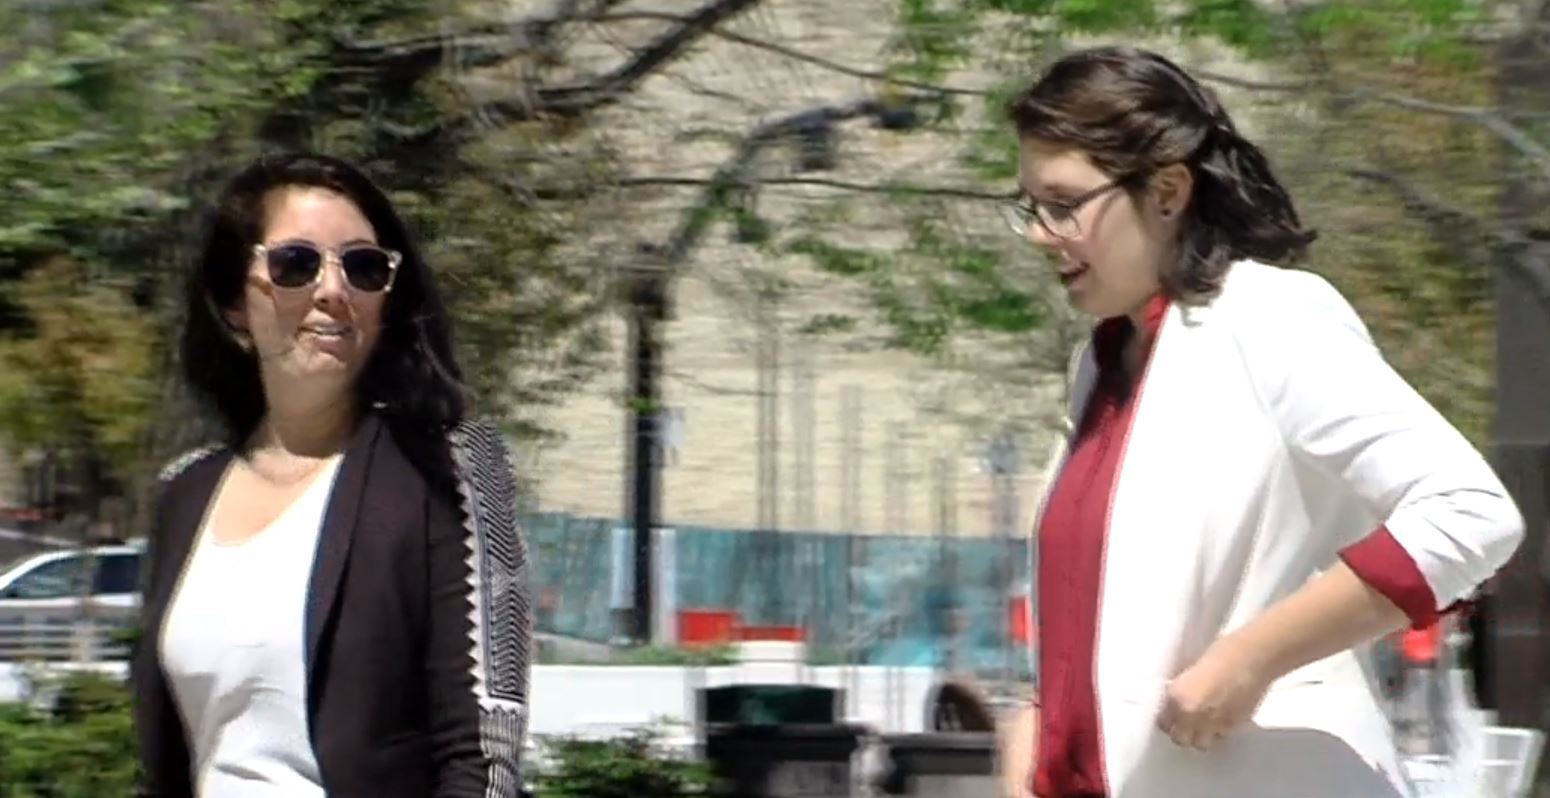 girl code dating coworkers Is workplace dating really off limits coworkers would find it easier to claim that an employee received preferential treatment from a supervisor he or she is.